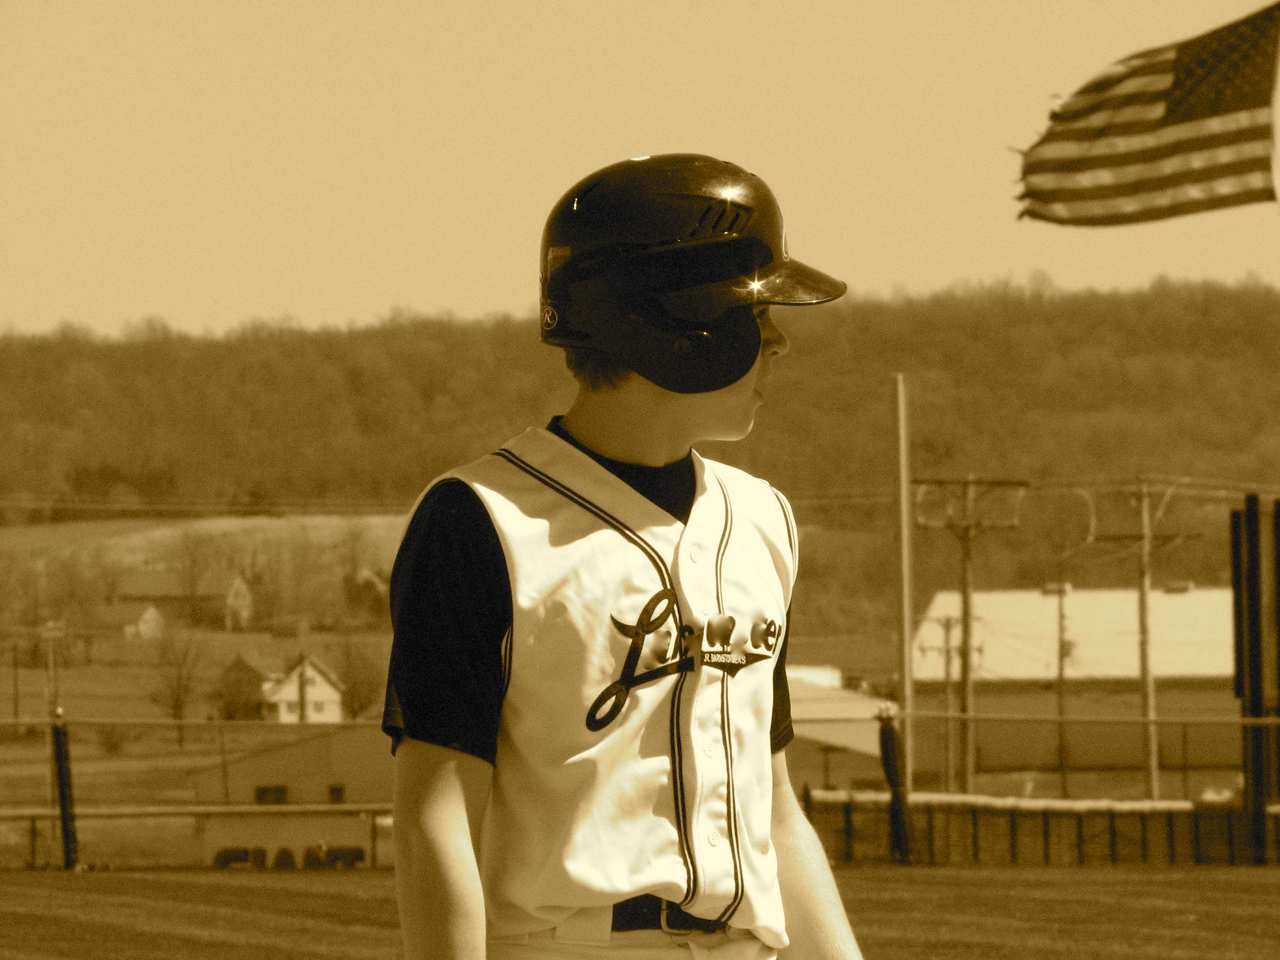 baseball and flag